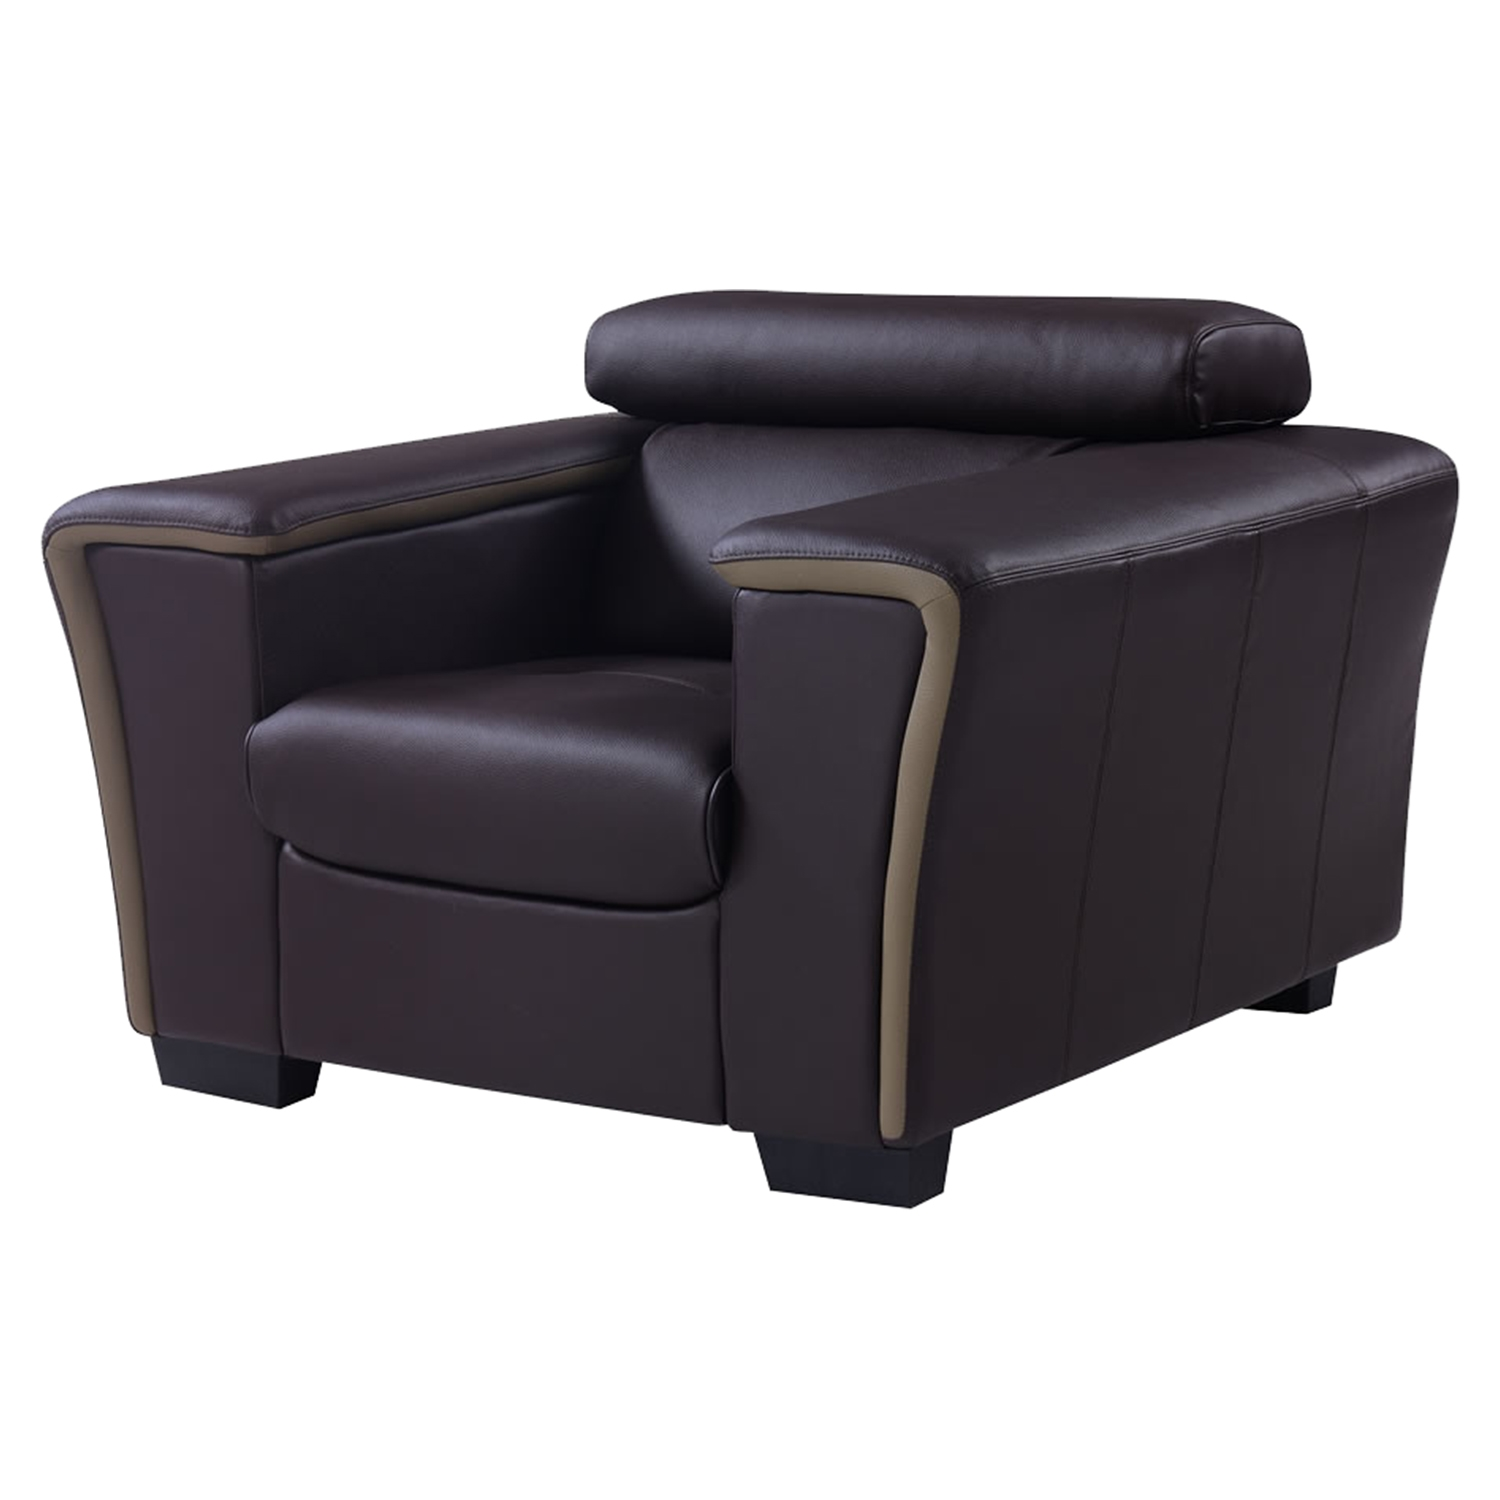 Mikayla Sofa Set with Headrest Function in Chocolate/Dark Cappuccino - GLO-U7190-L6R-SET